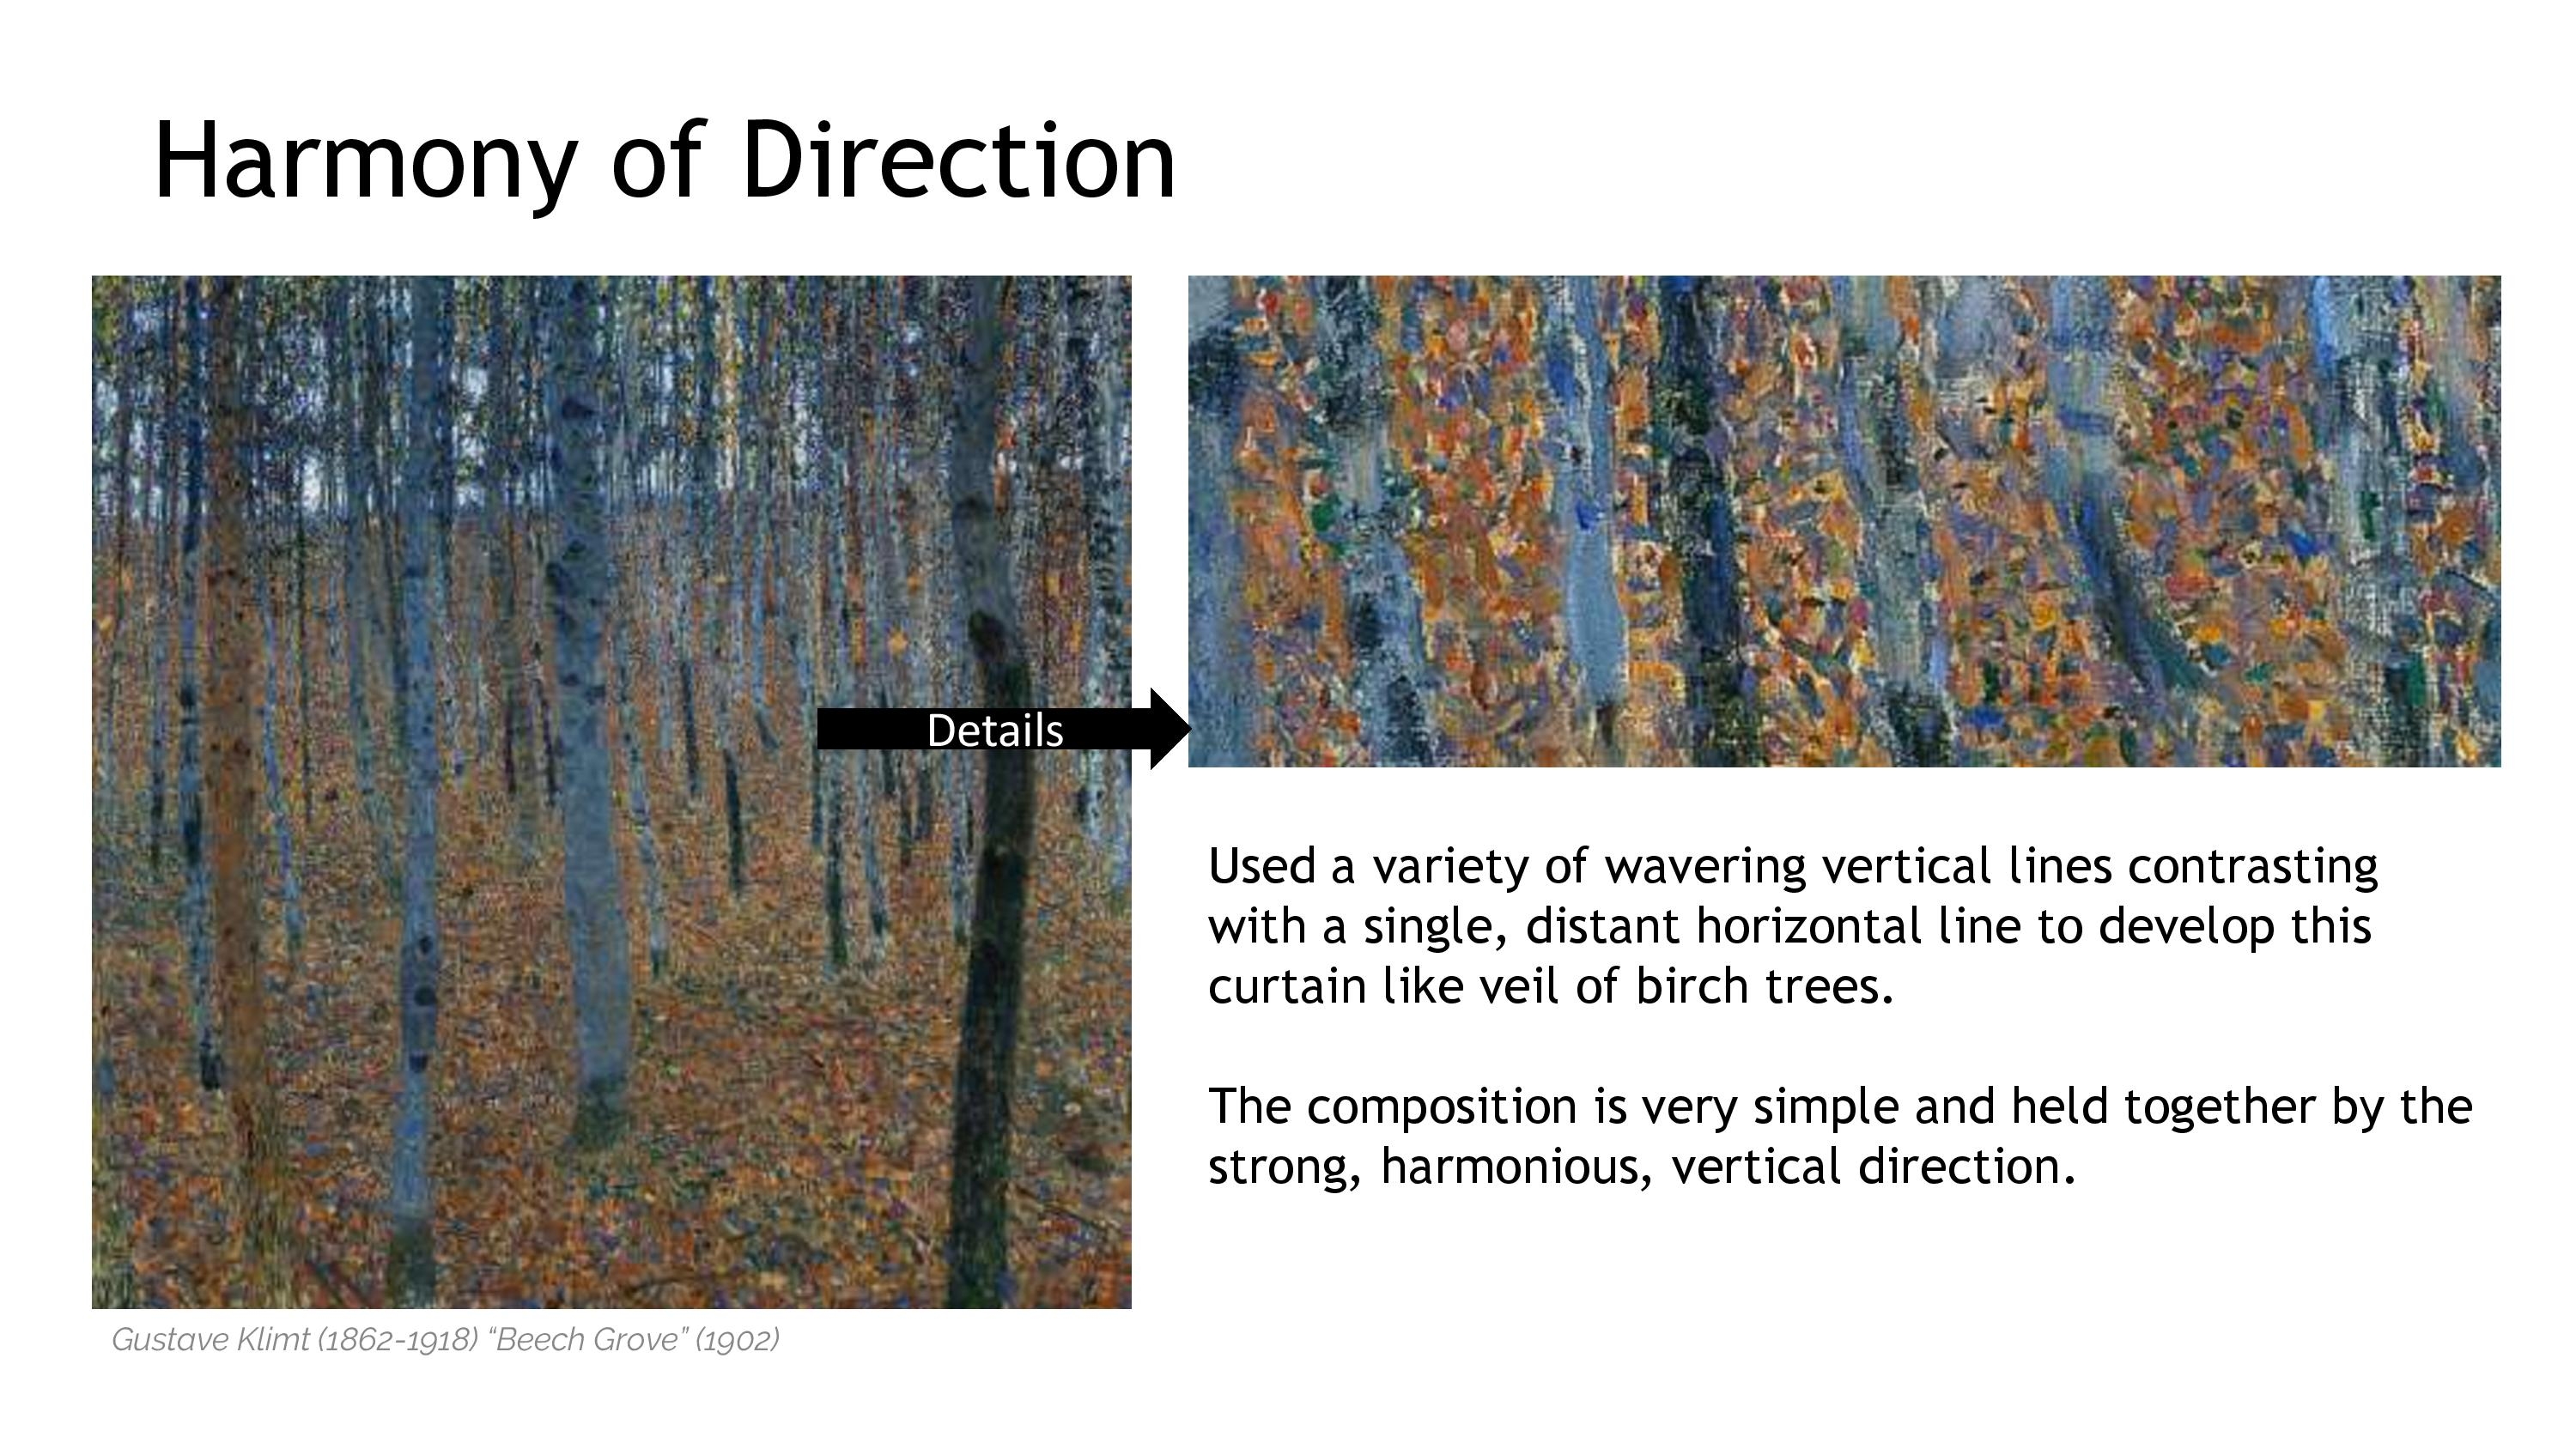 harmony-pattern-size-scale-proportion-page-010